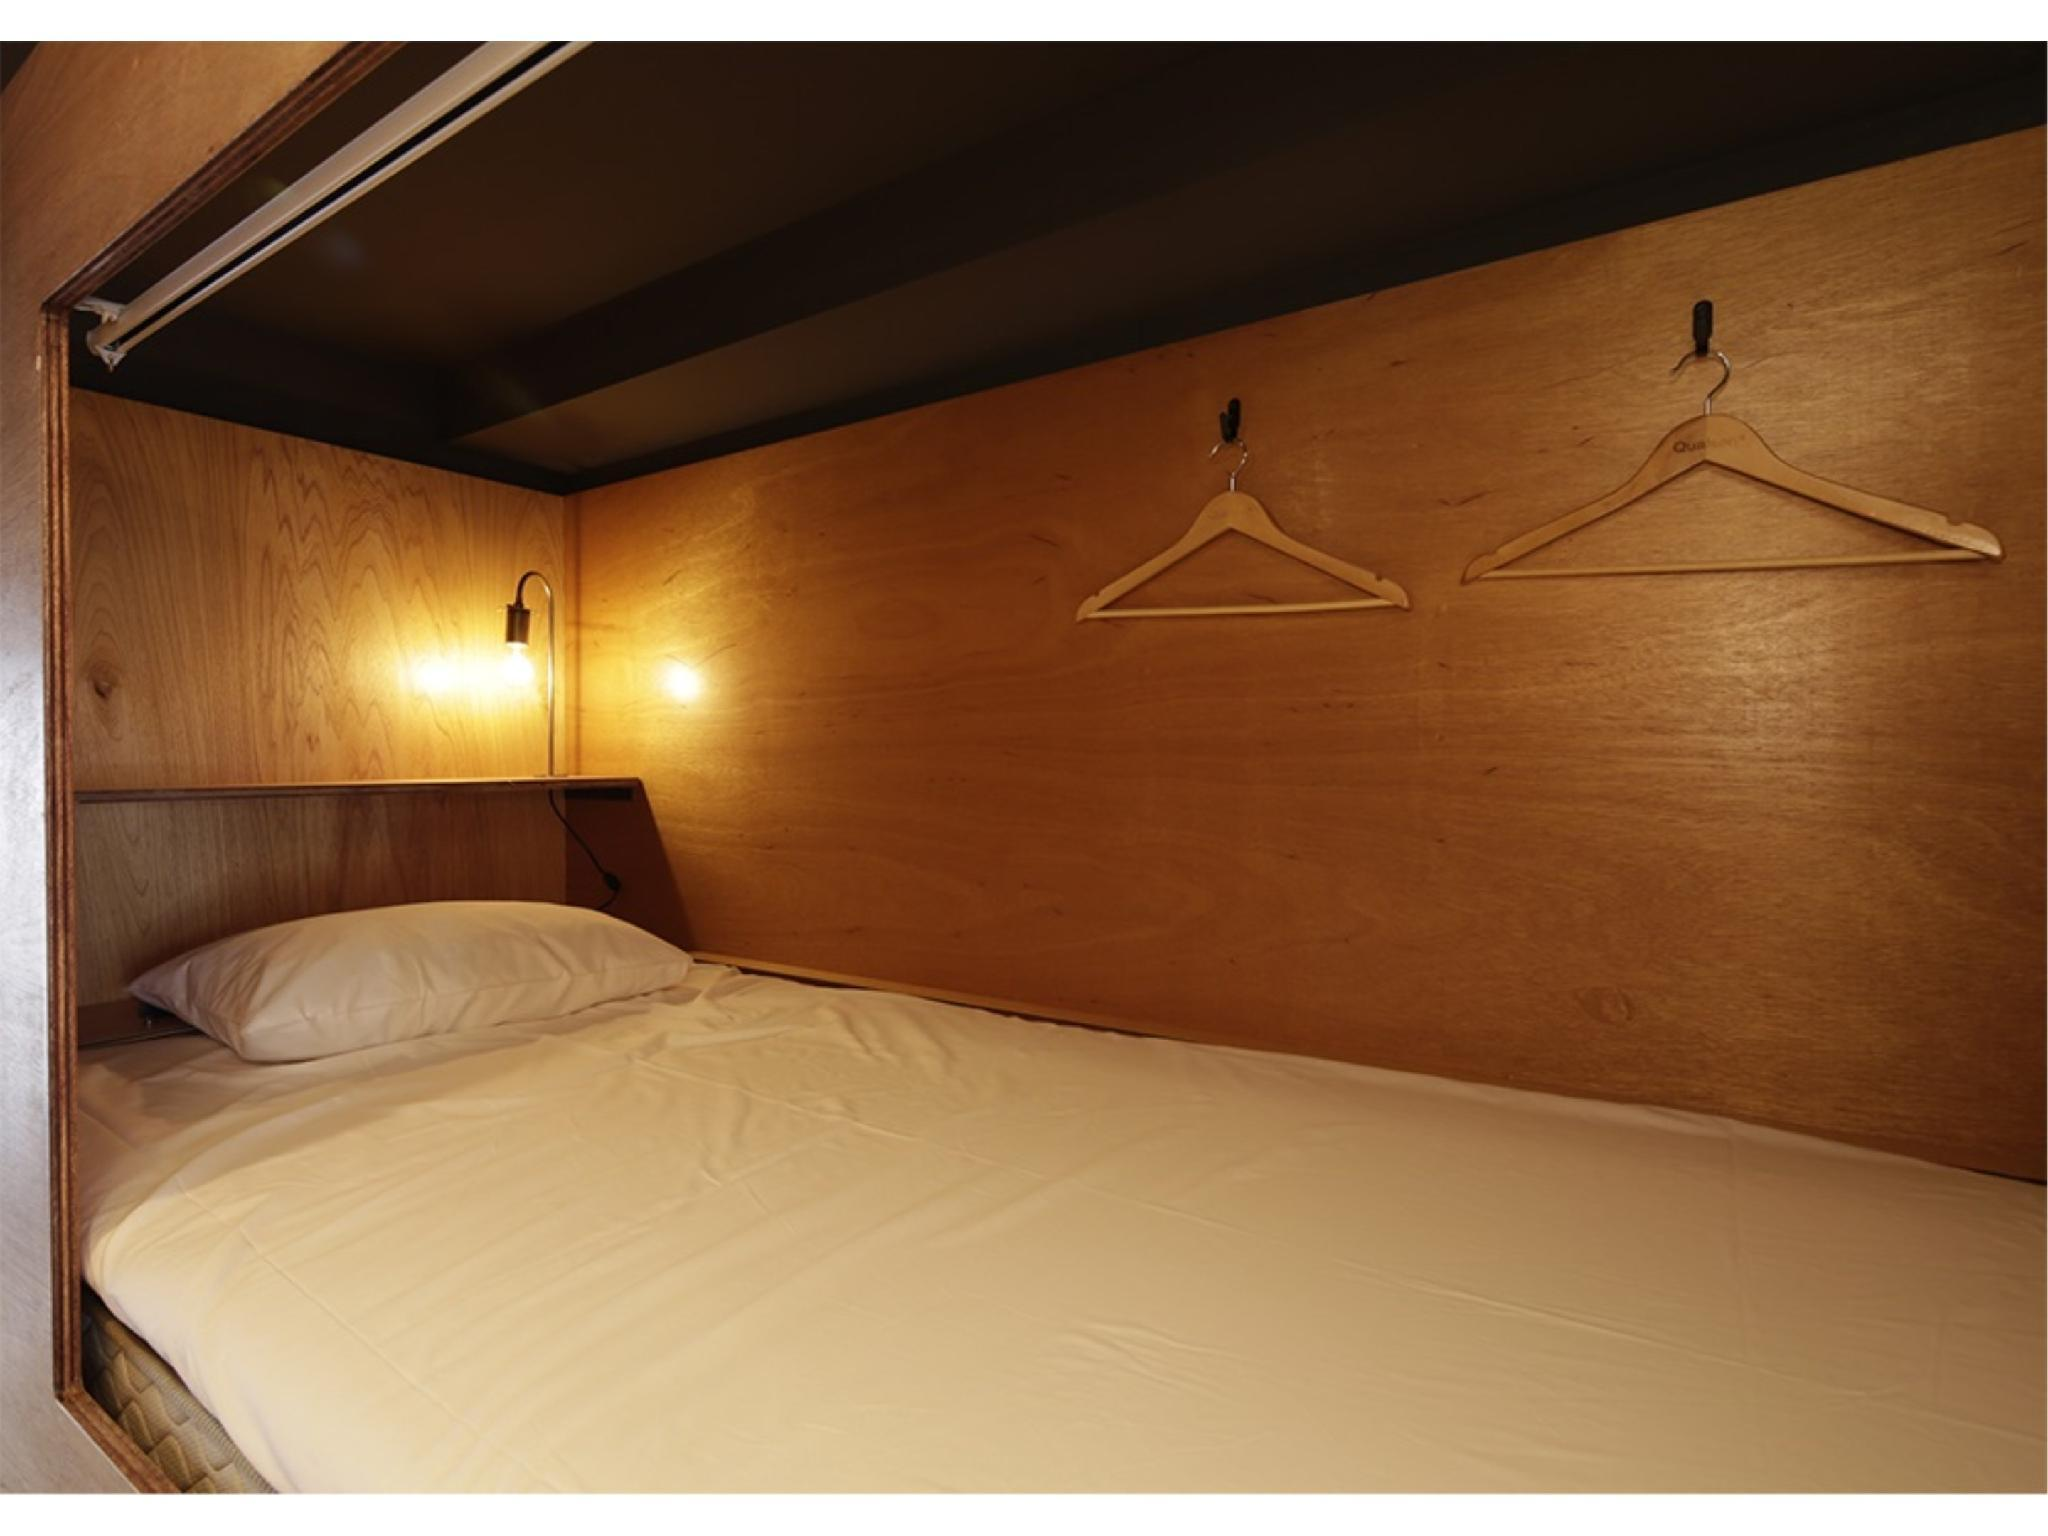 包租合住房(雙層床)※無廁所浴室 (Private Dormitory Room (Bunk Beds) *No bath in room)